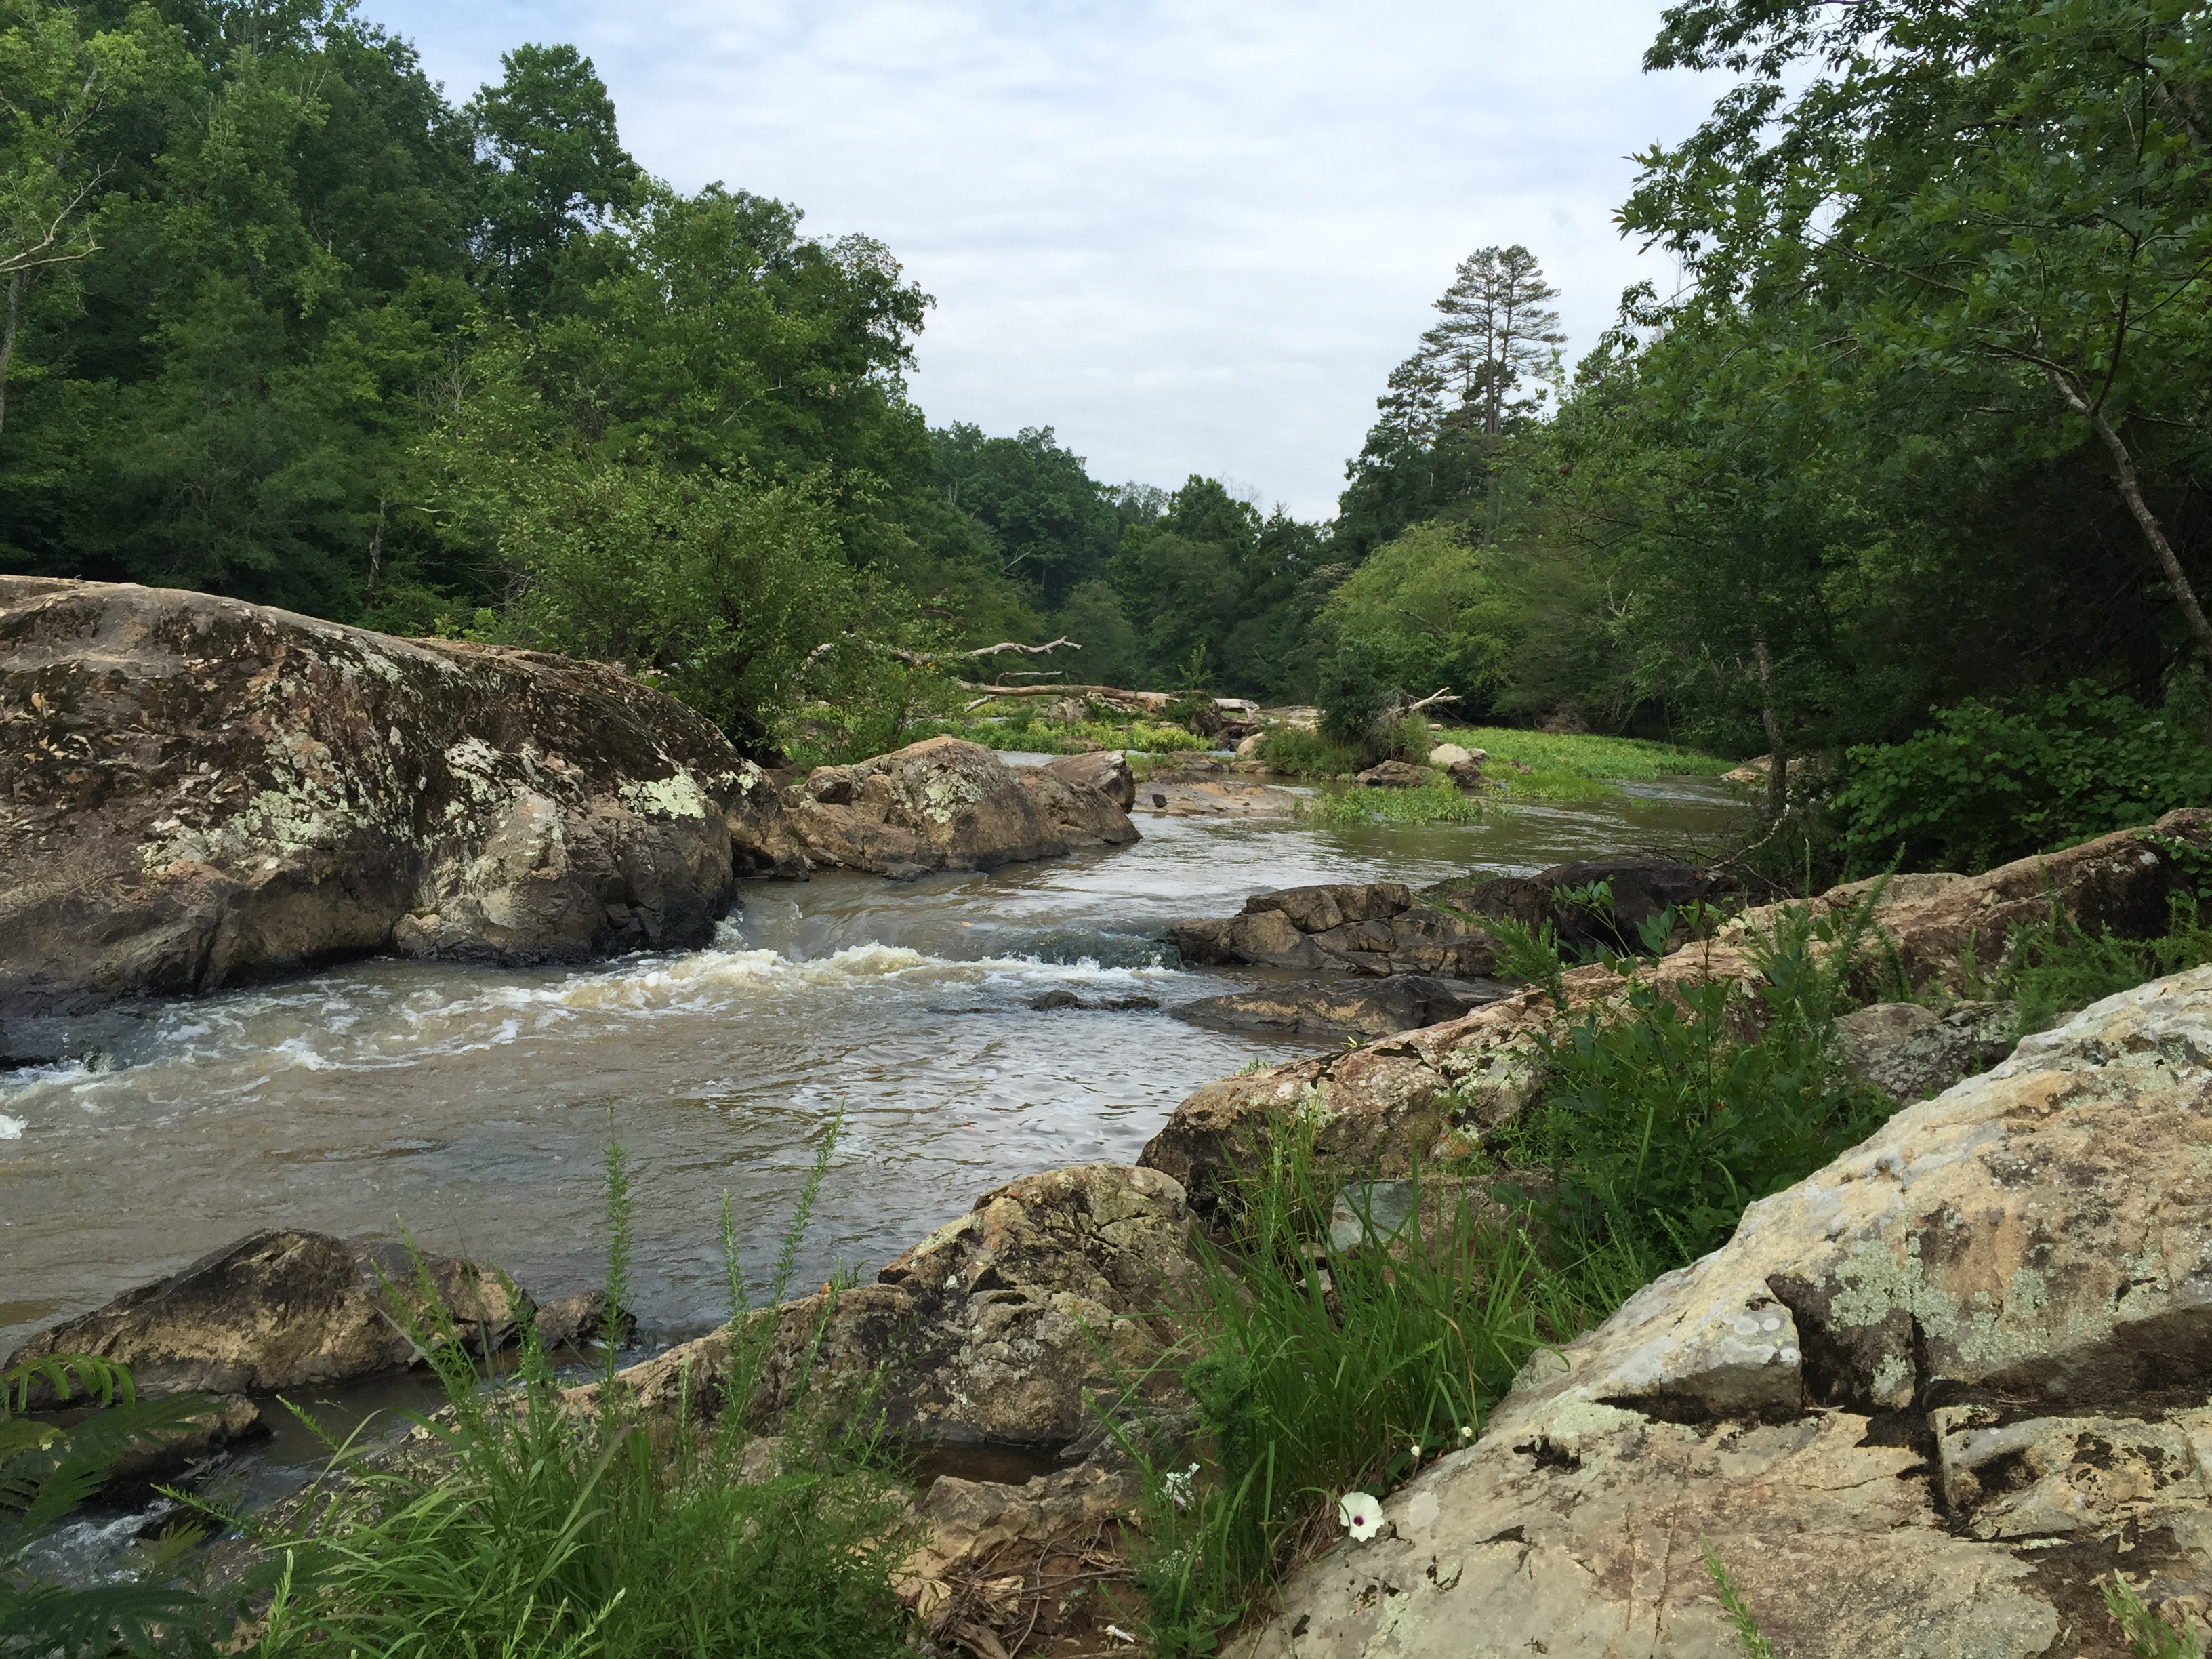 An Amazing World of Wonder Minutes from Downtown Durham